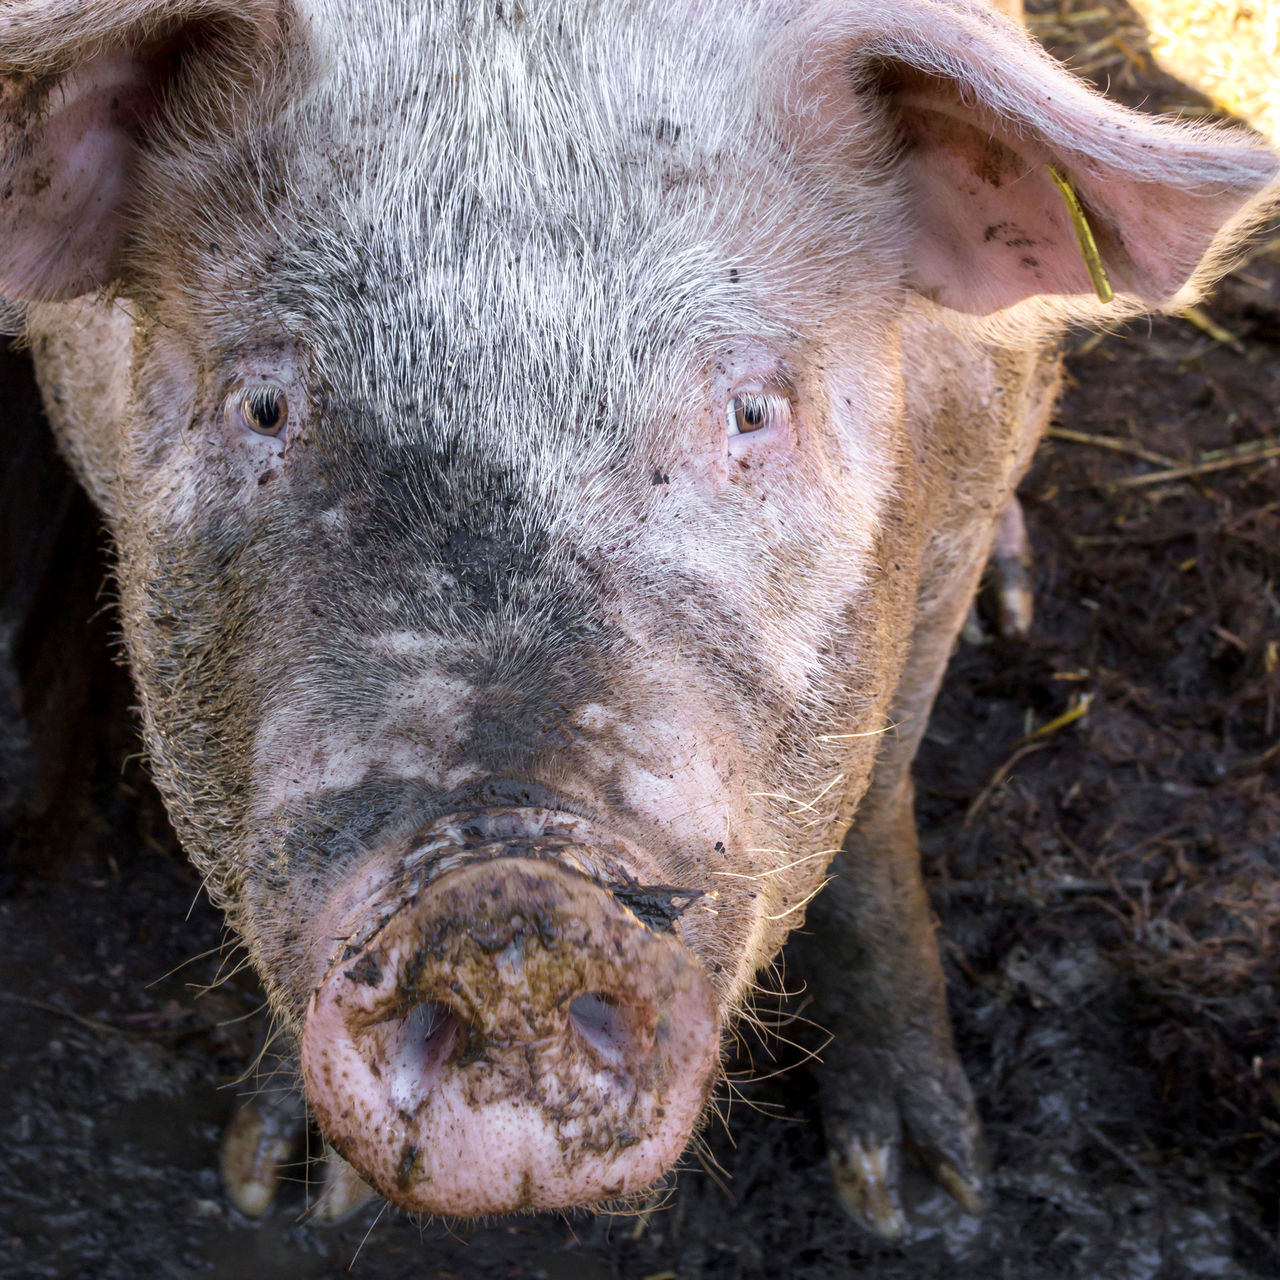 Dirty pig in mud on the farm looking the camera Animal Themes Death Dirt Dirty Farm Food HOG Livestock Massacre Mud Nose Oink Pig Piggy Piglet Pigsty Pink Pork Proteins Rural Scene Slaughterhouse Snout The Culture Of The Holidays Vegan Vegetarian Food